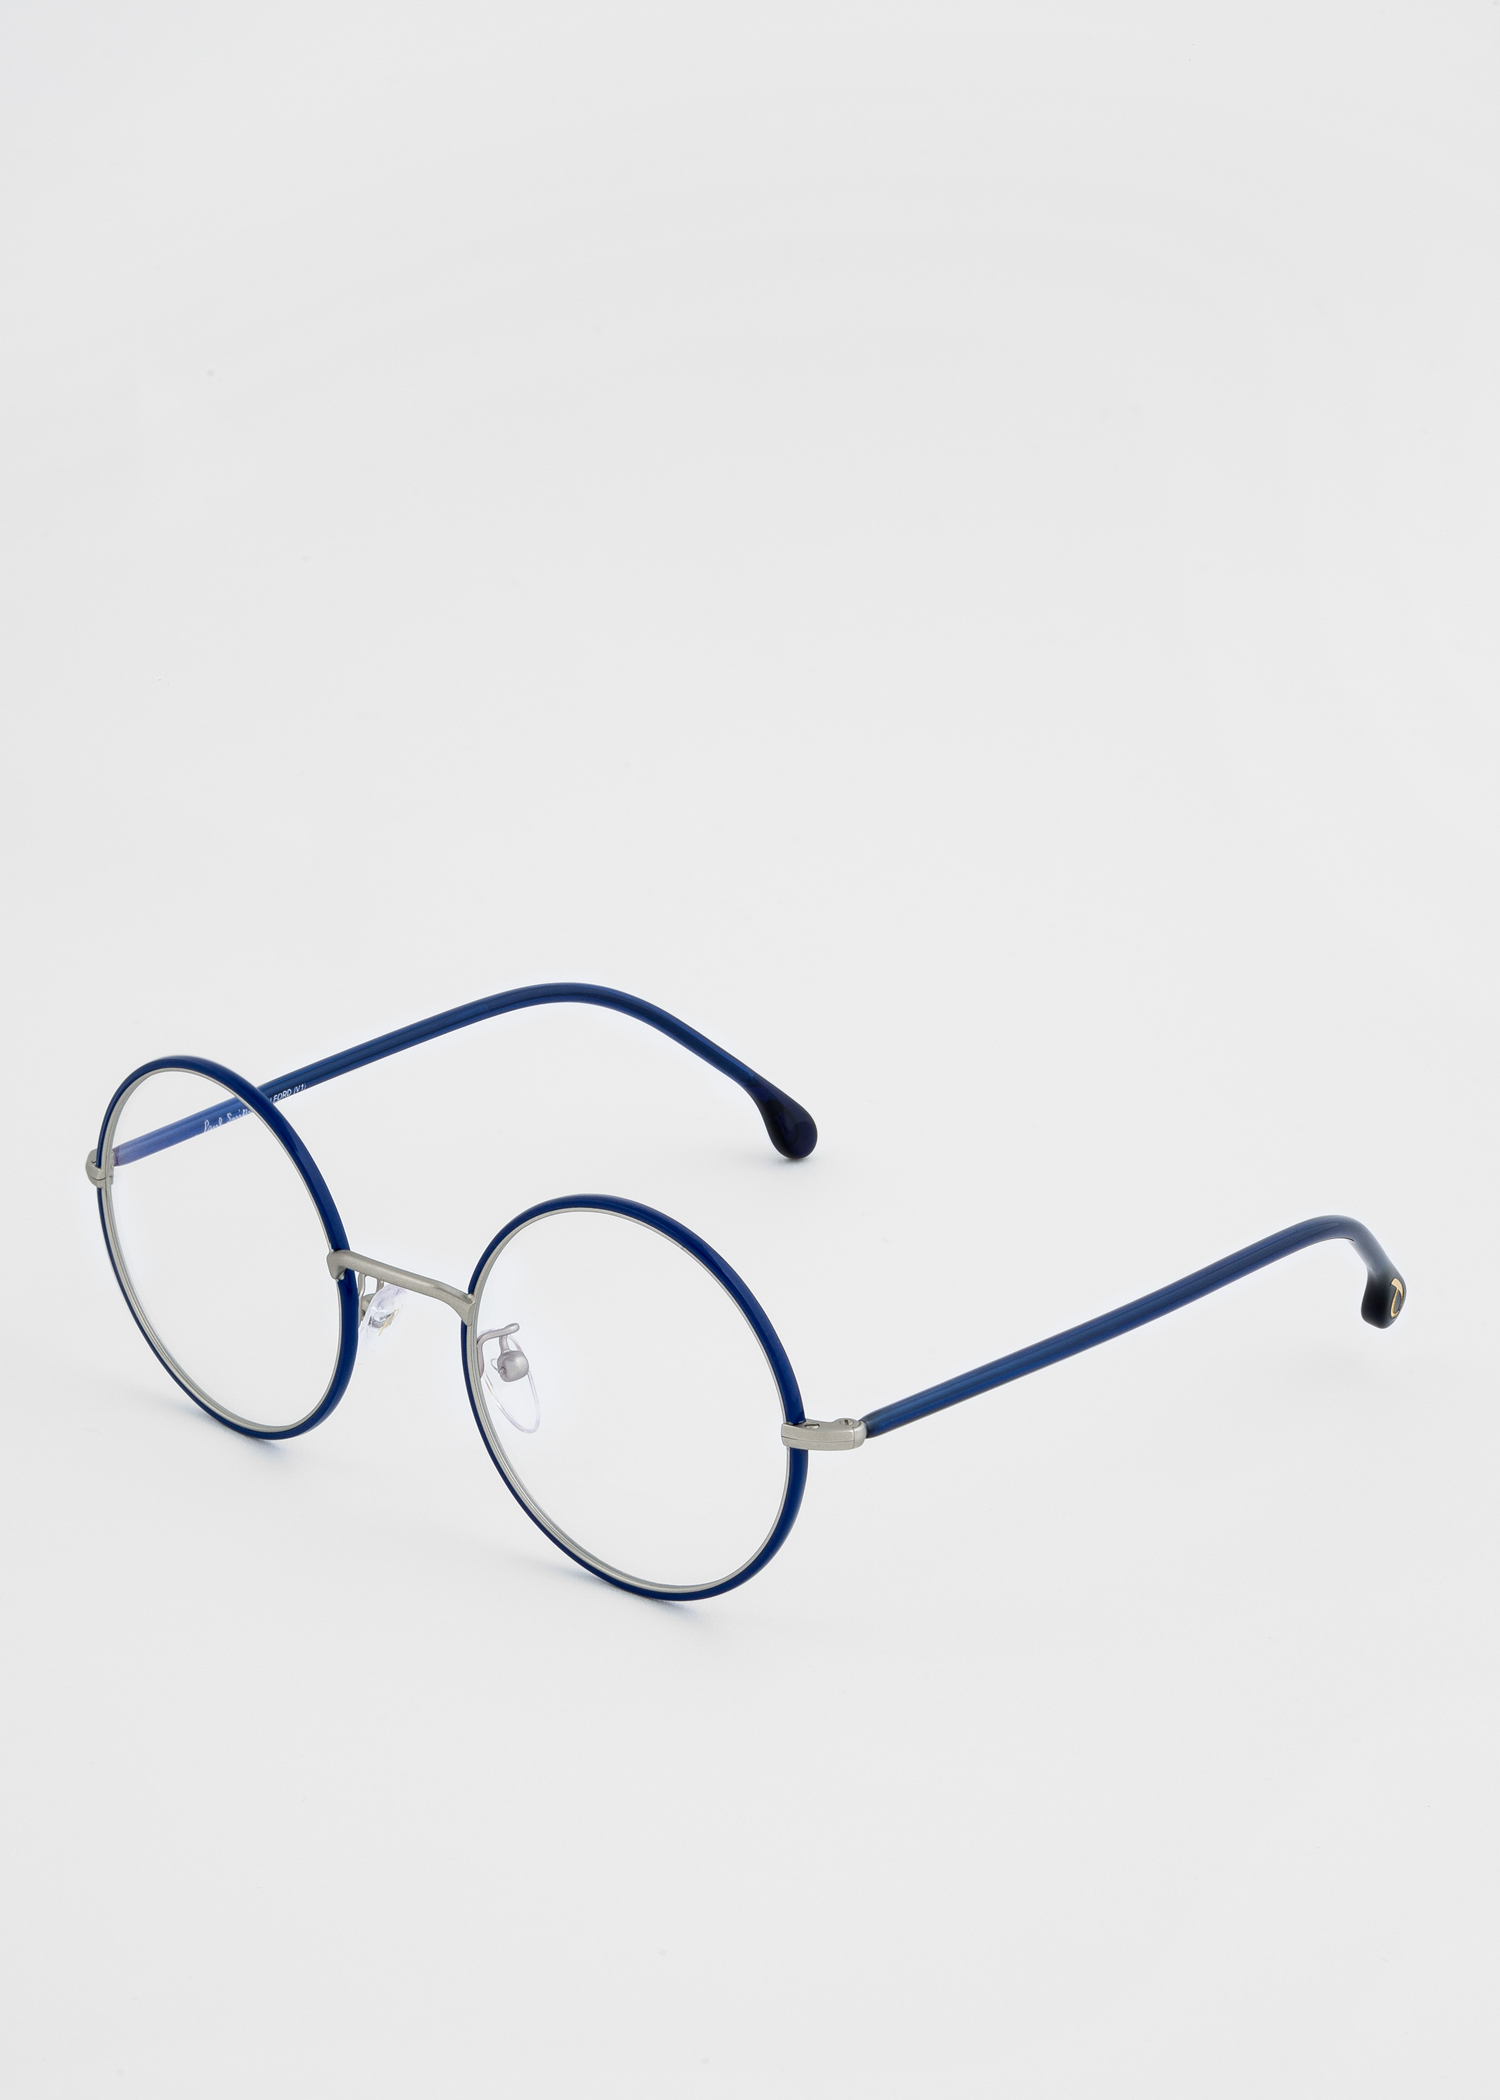 c0ff12c8bd97e Paul Smith Deep Navy And Silver  Alford  Spectacles - Paul Smith Asia